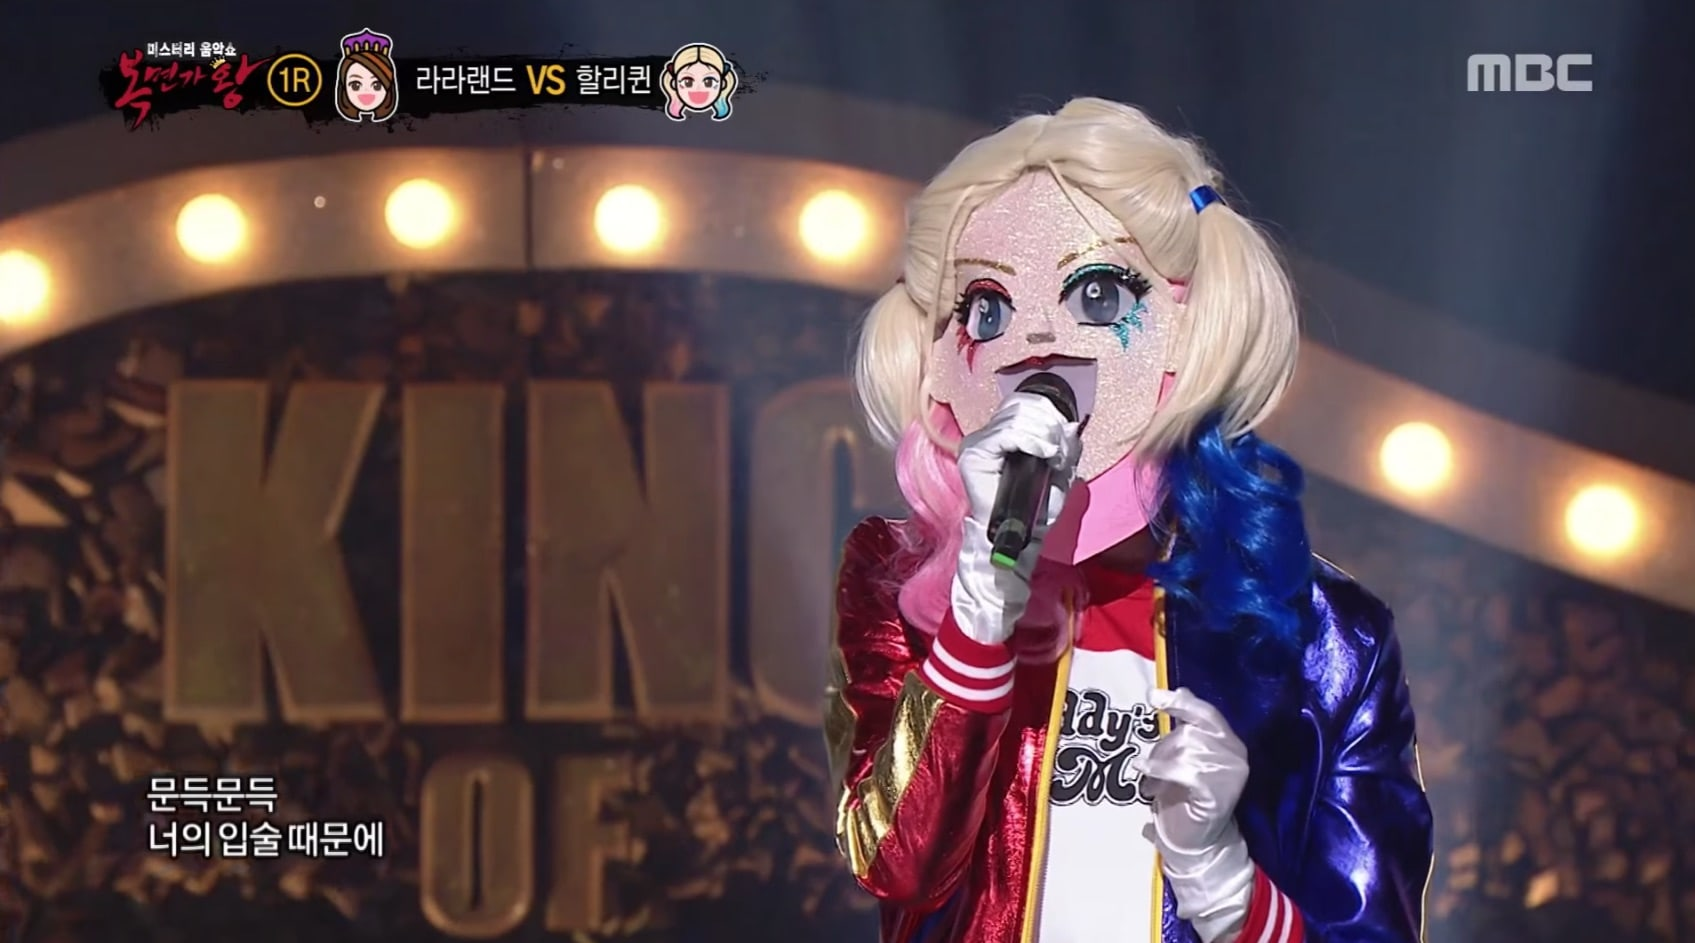 """The King of Mask Singer"": An actor and former member of a famous group returns to the stage"